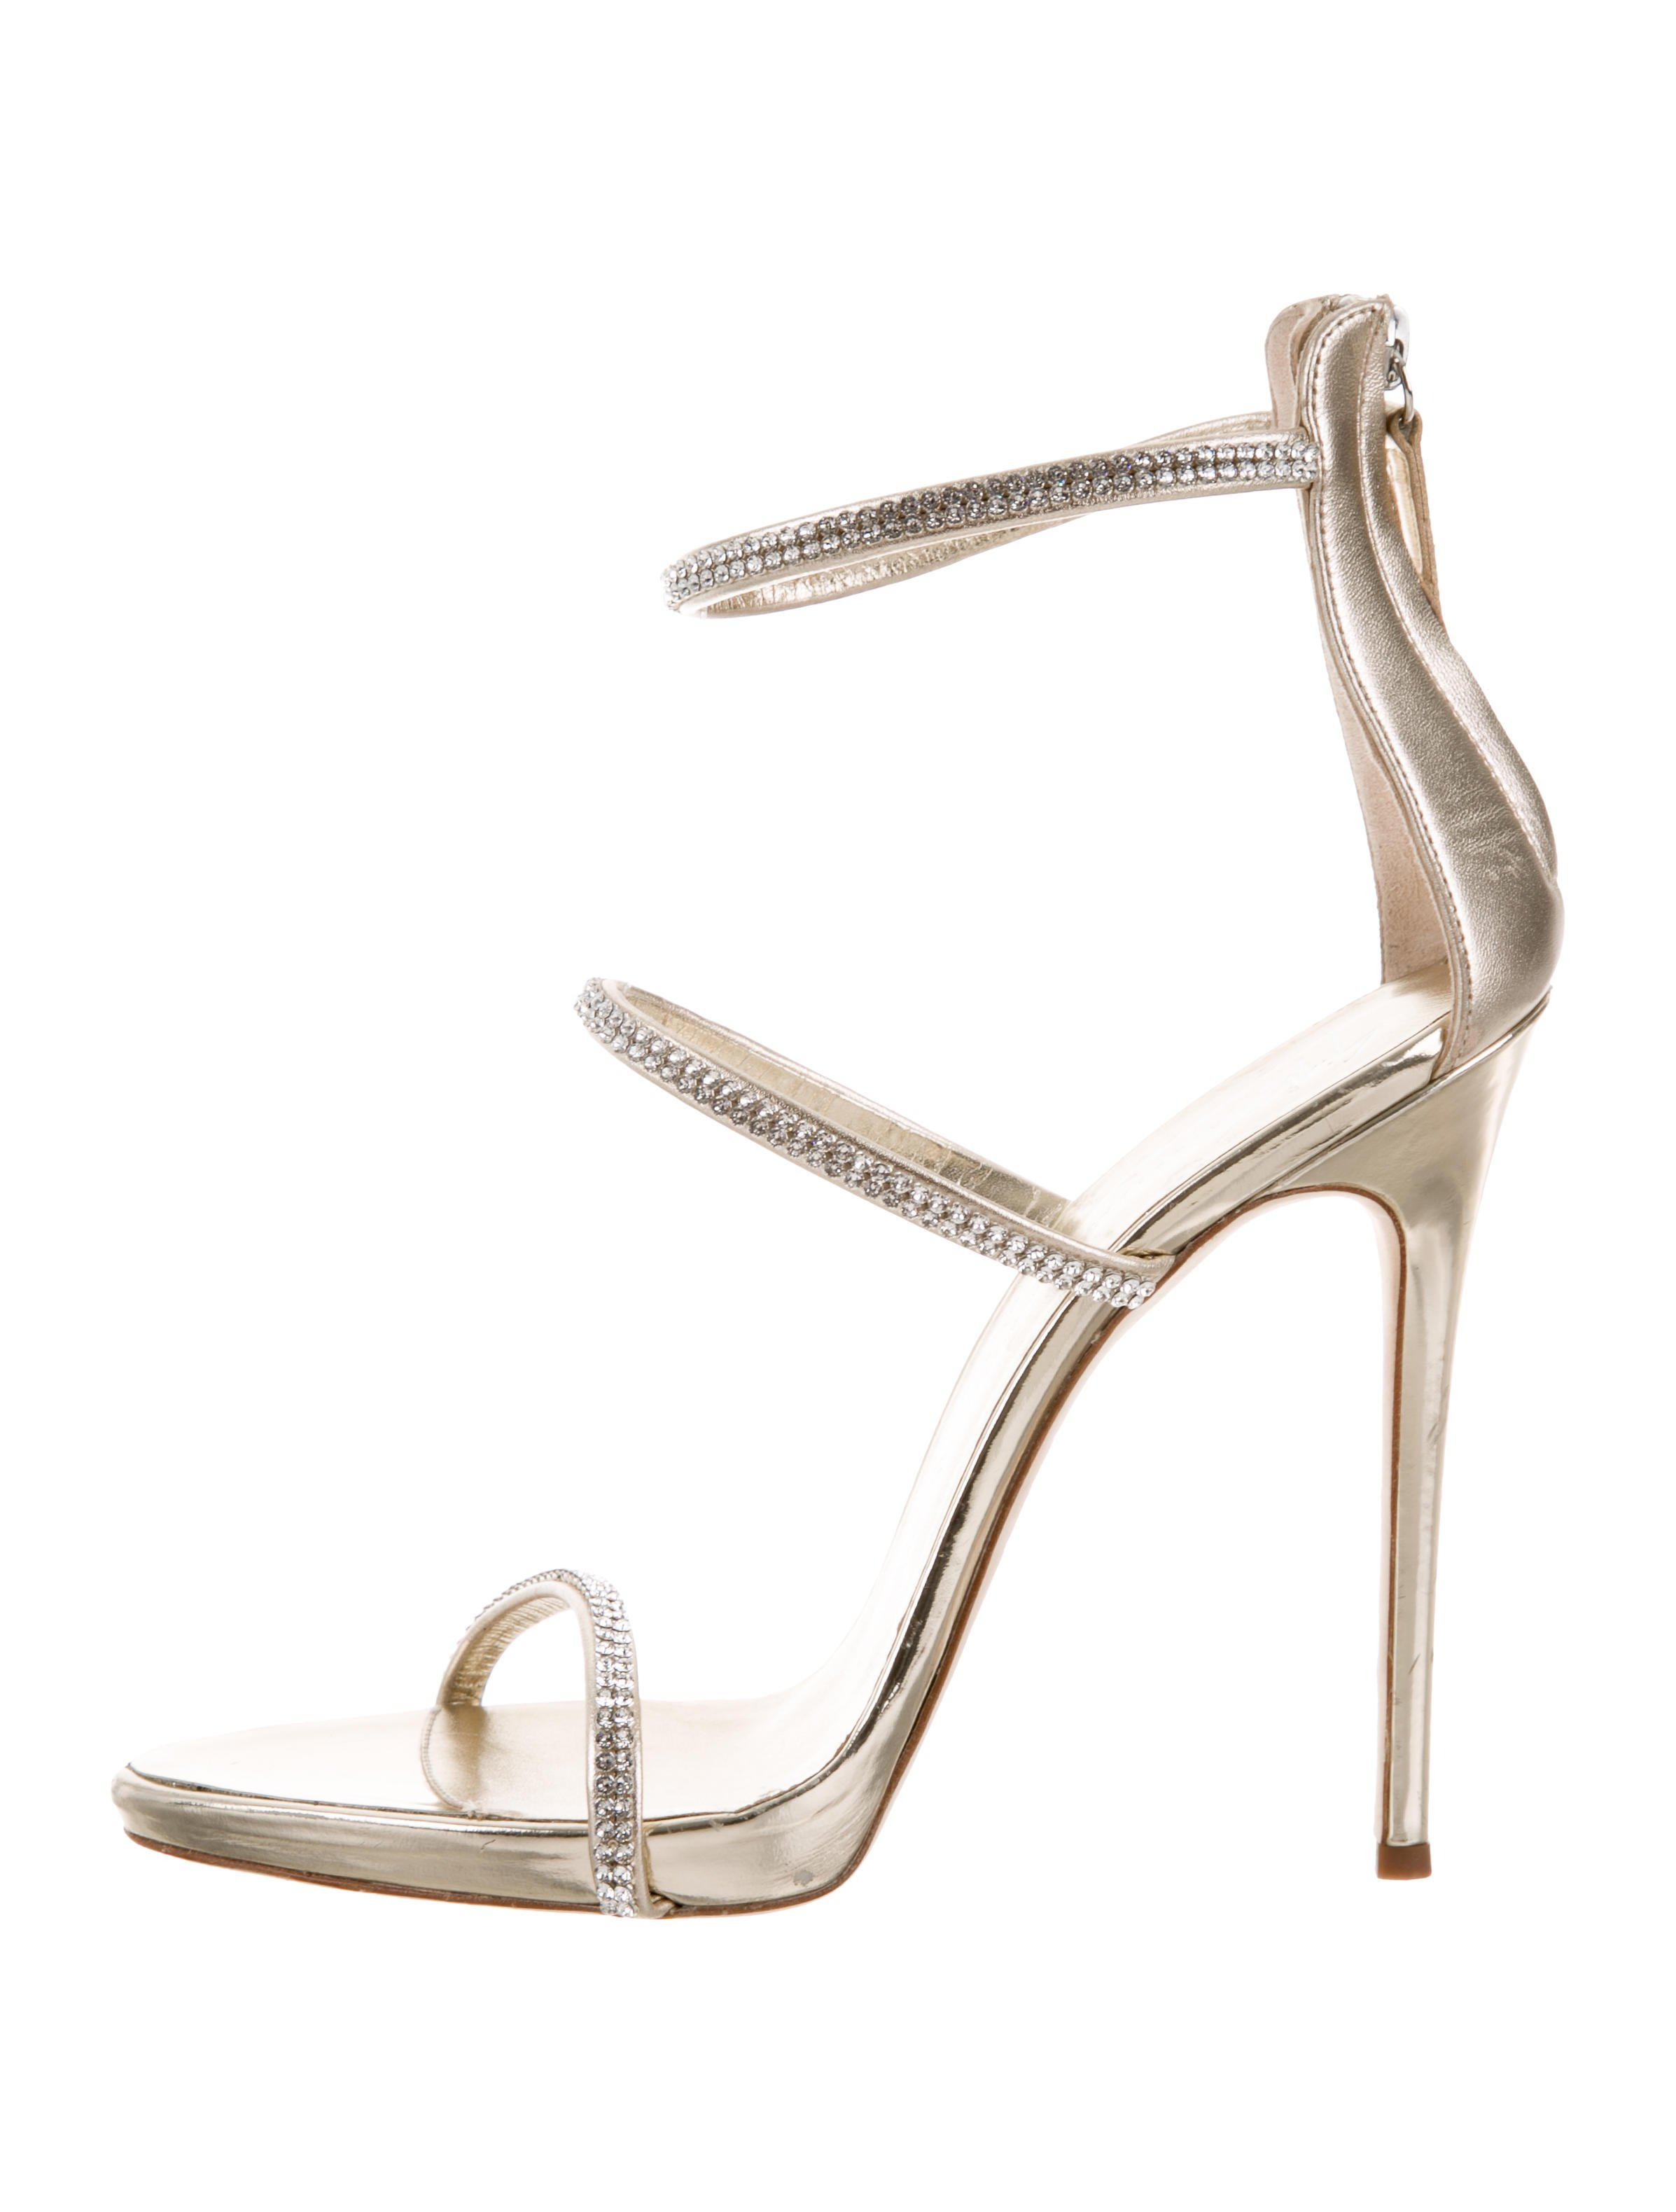 c9f0aefd8ce6 Giuseppe Zanotti. Women s Metallic Coline 110 Embellished Leather Sandals